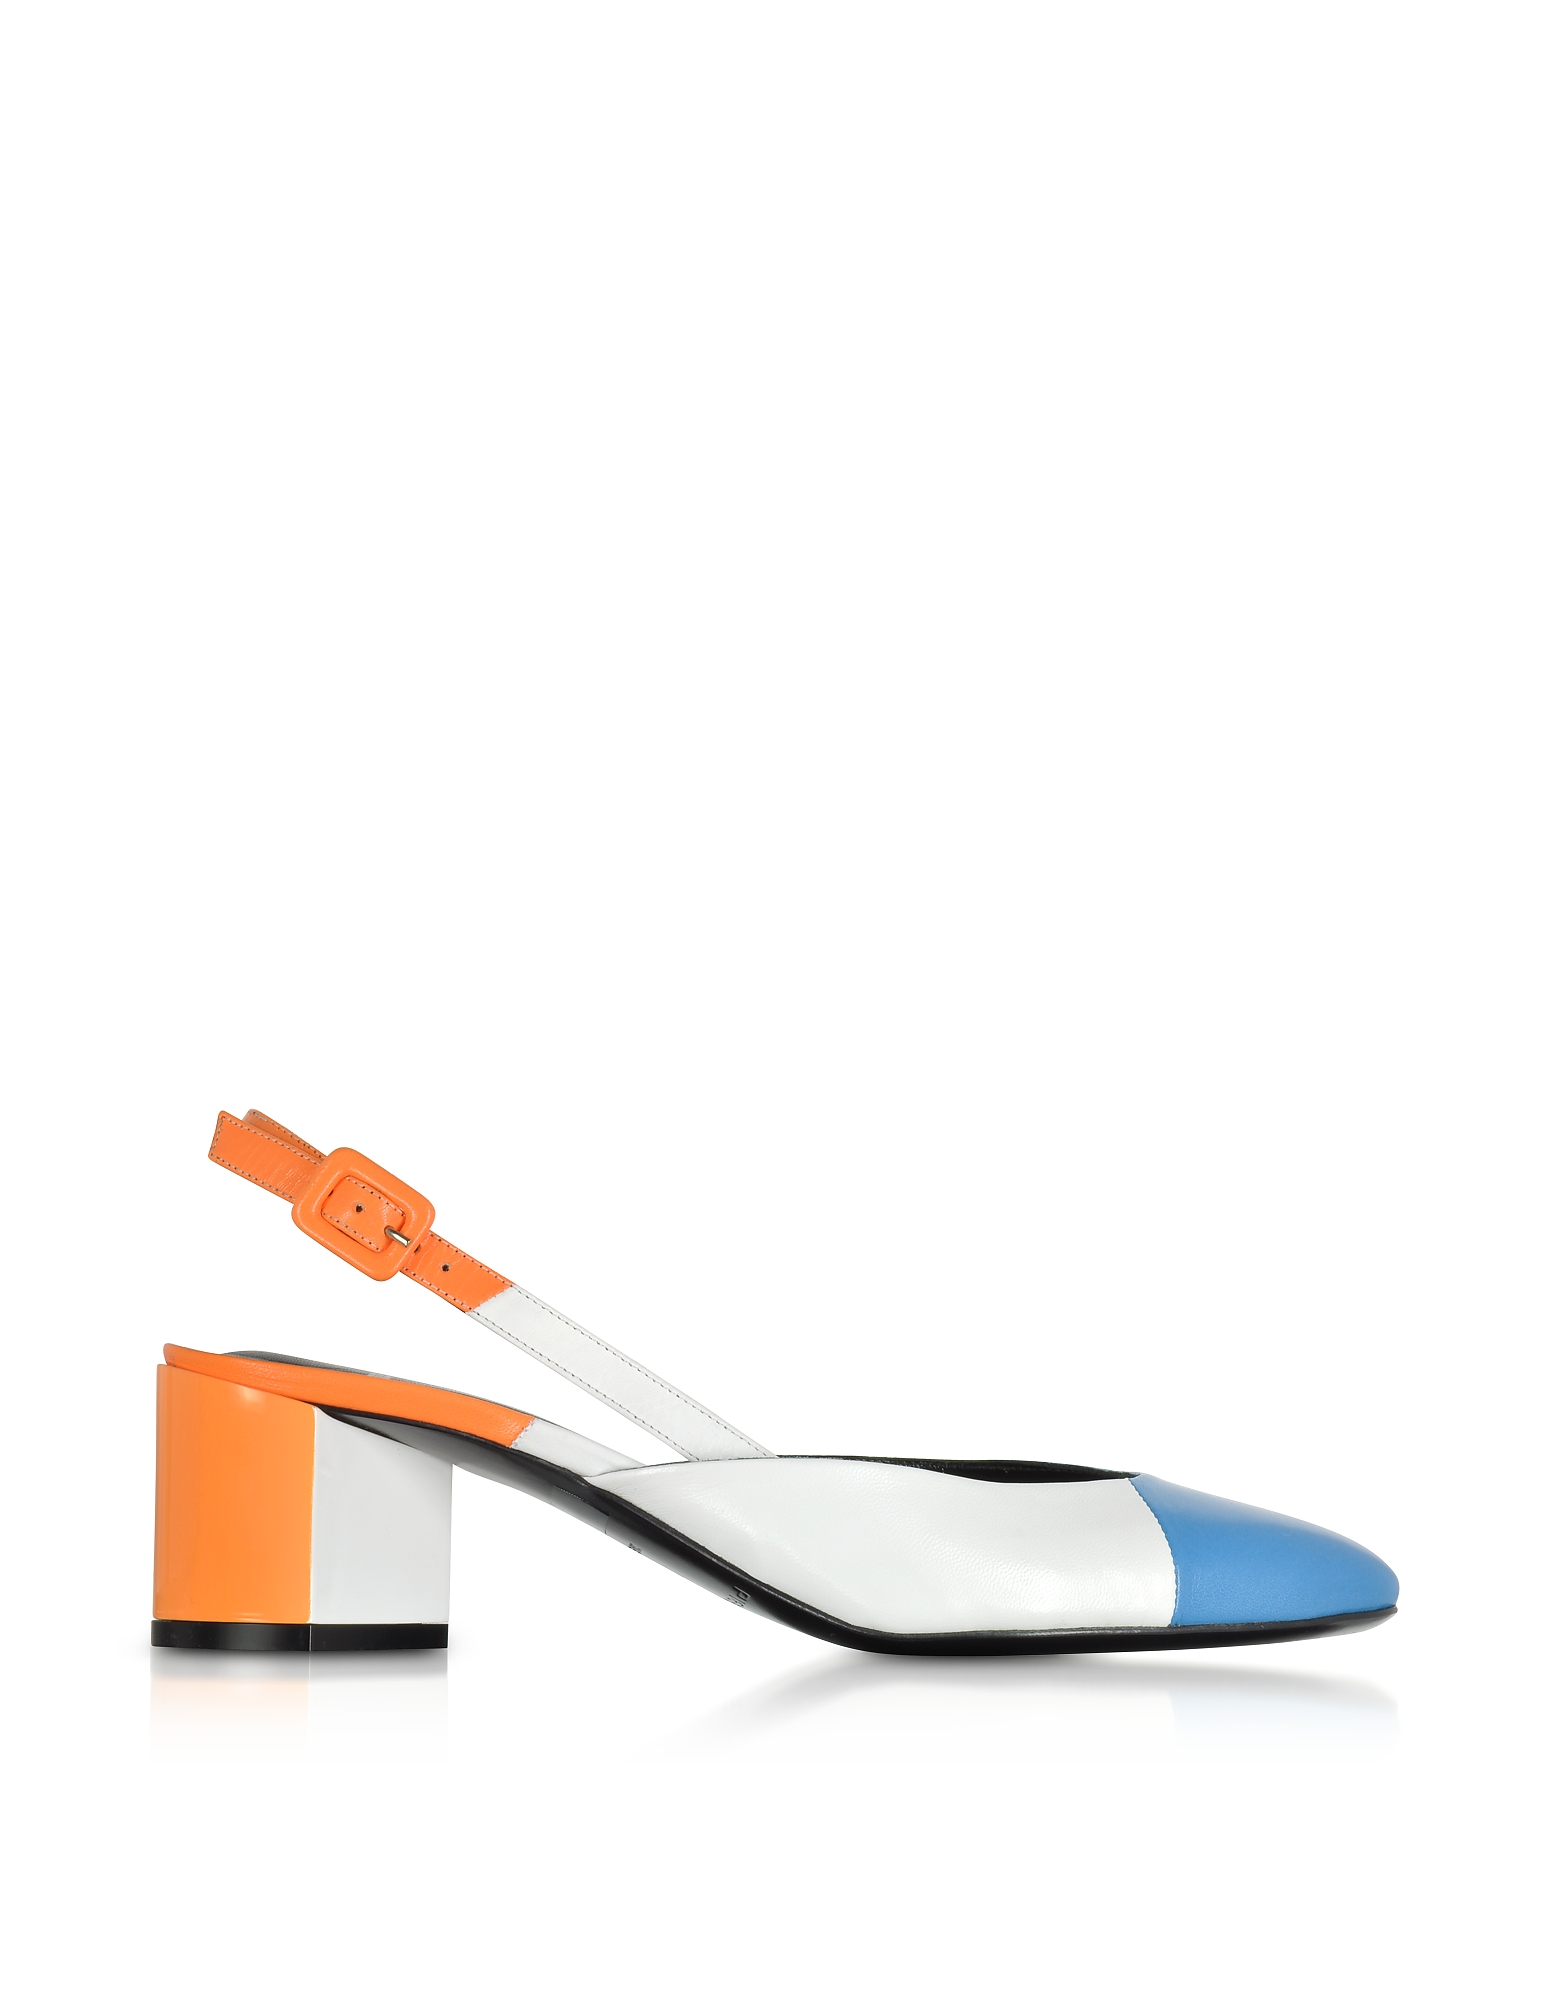 Pierre Hardy Shoes, Blue, White and Orange Mid Heel Slingback Pumps